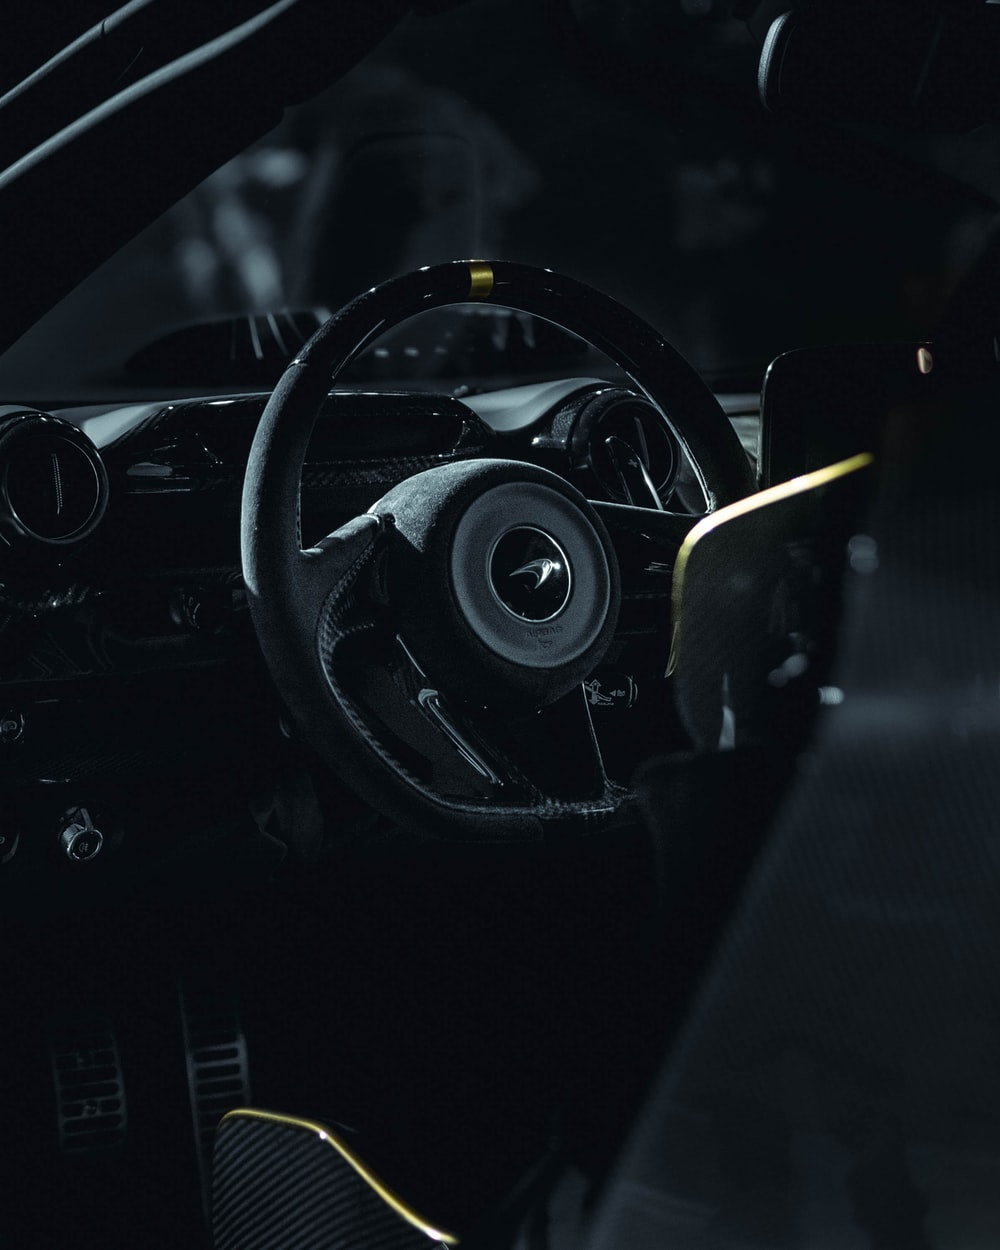 close-up photography of black vehicle steering wheel during nighttime